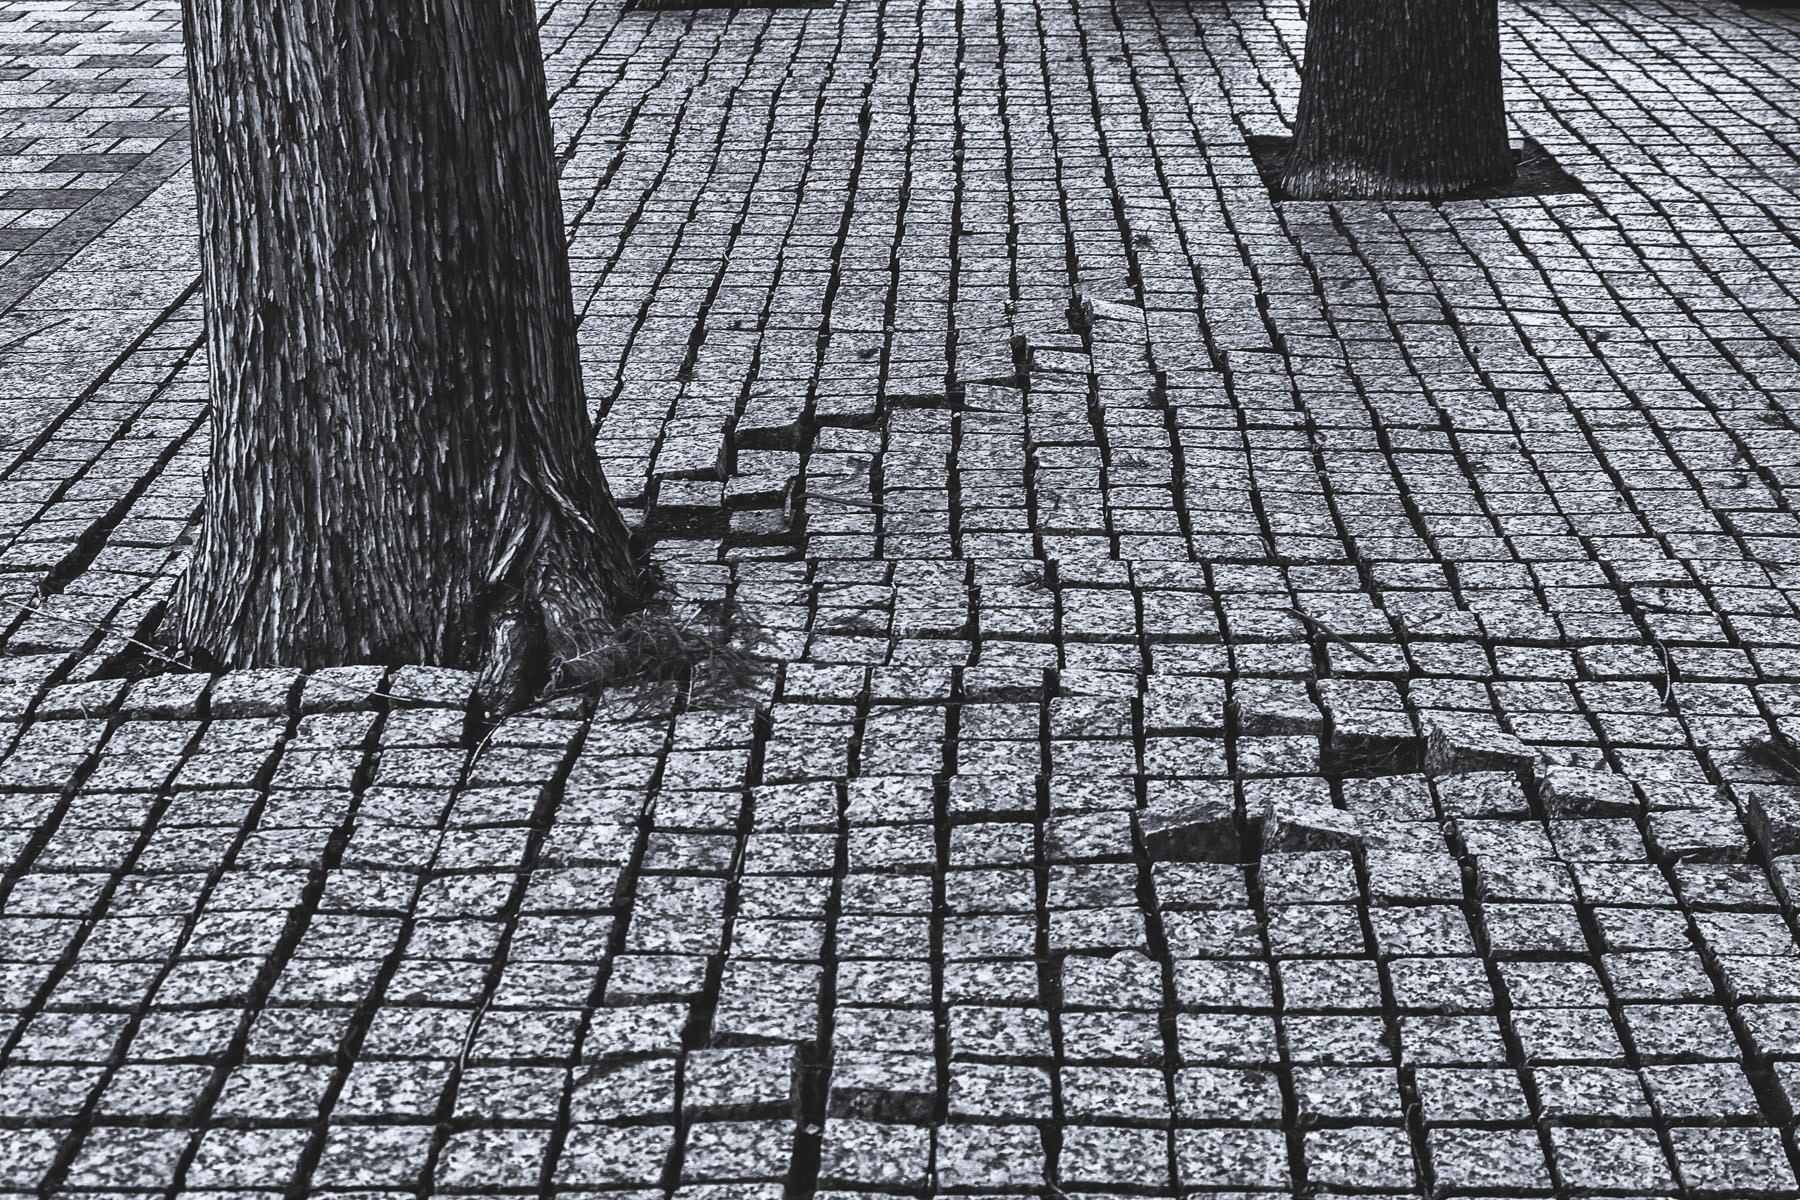 Granite paving stones disturbed by tree roots in Downtown Dallas, Texas.